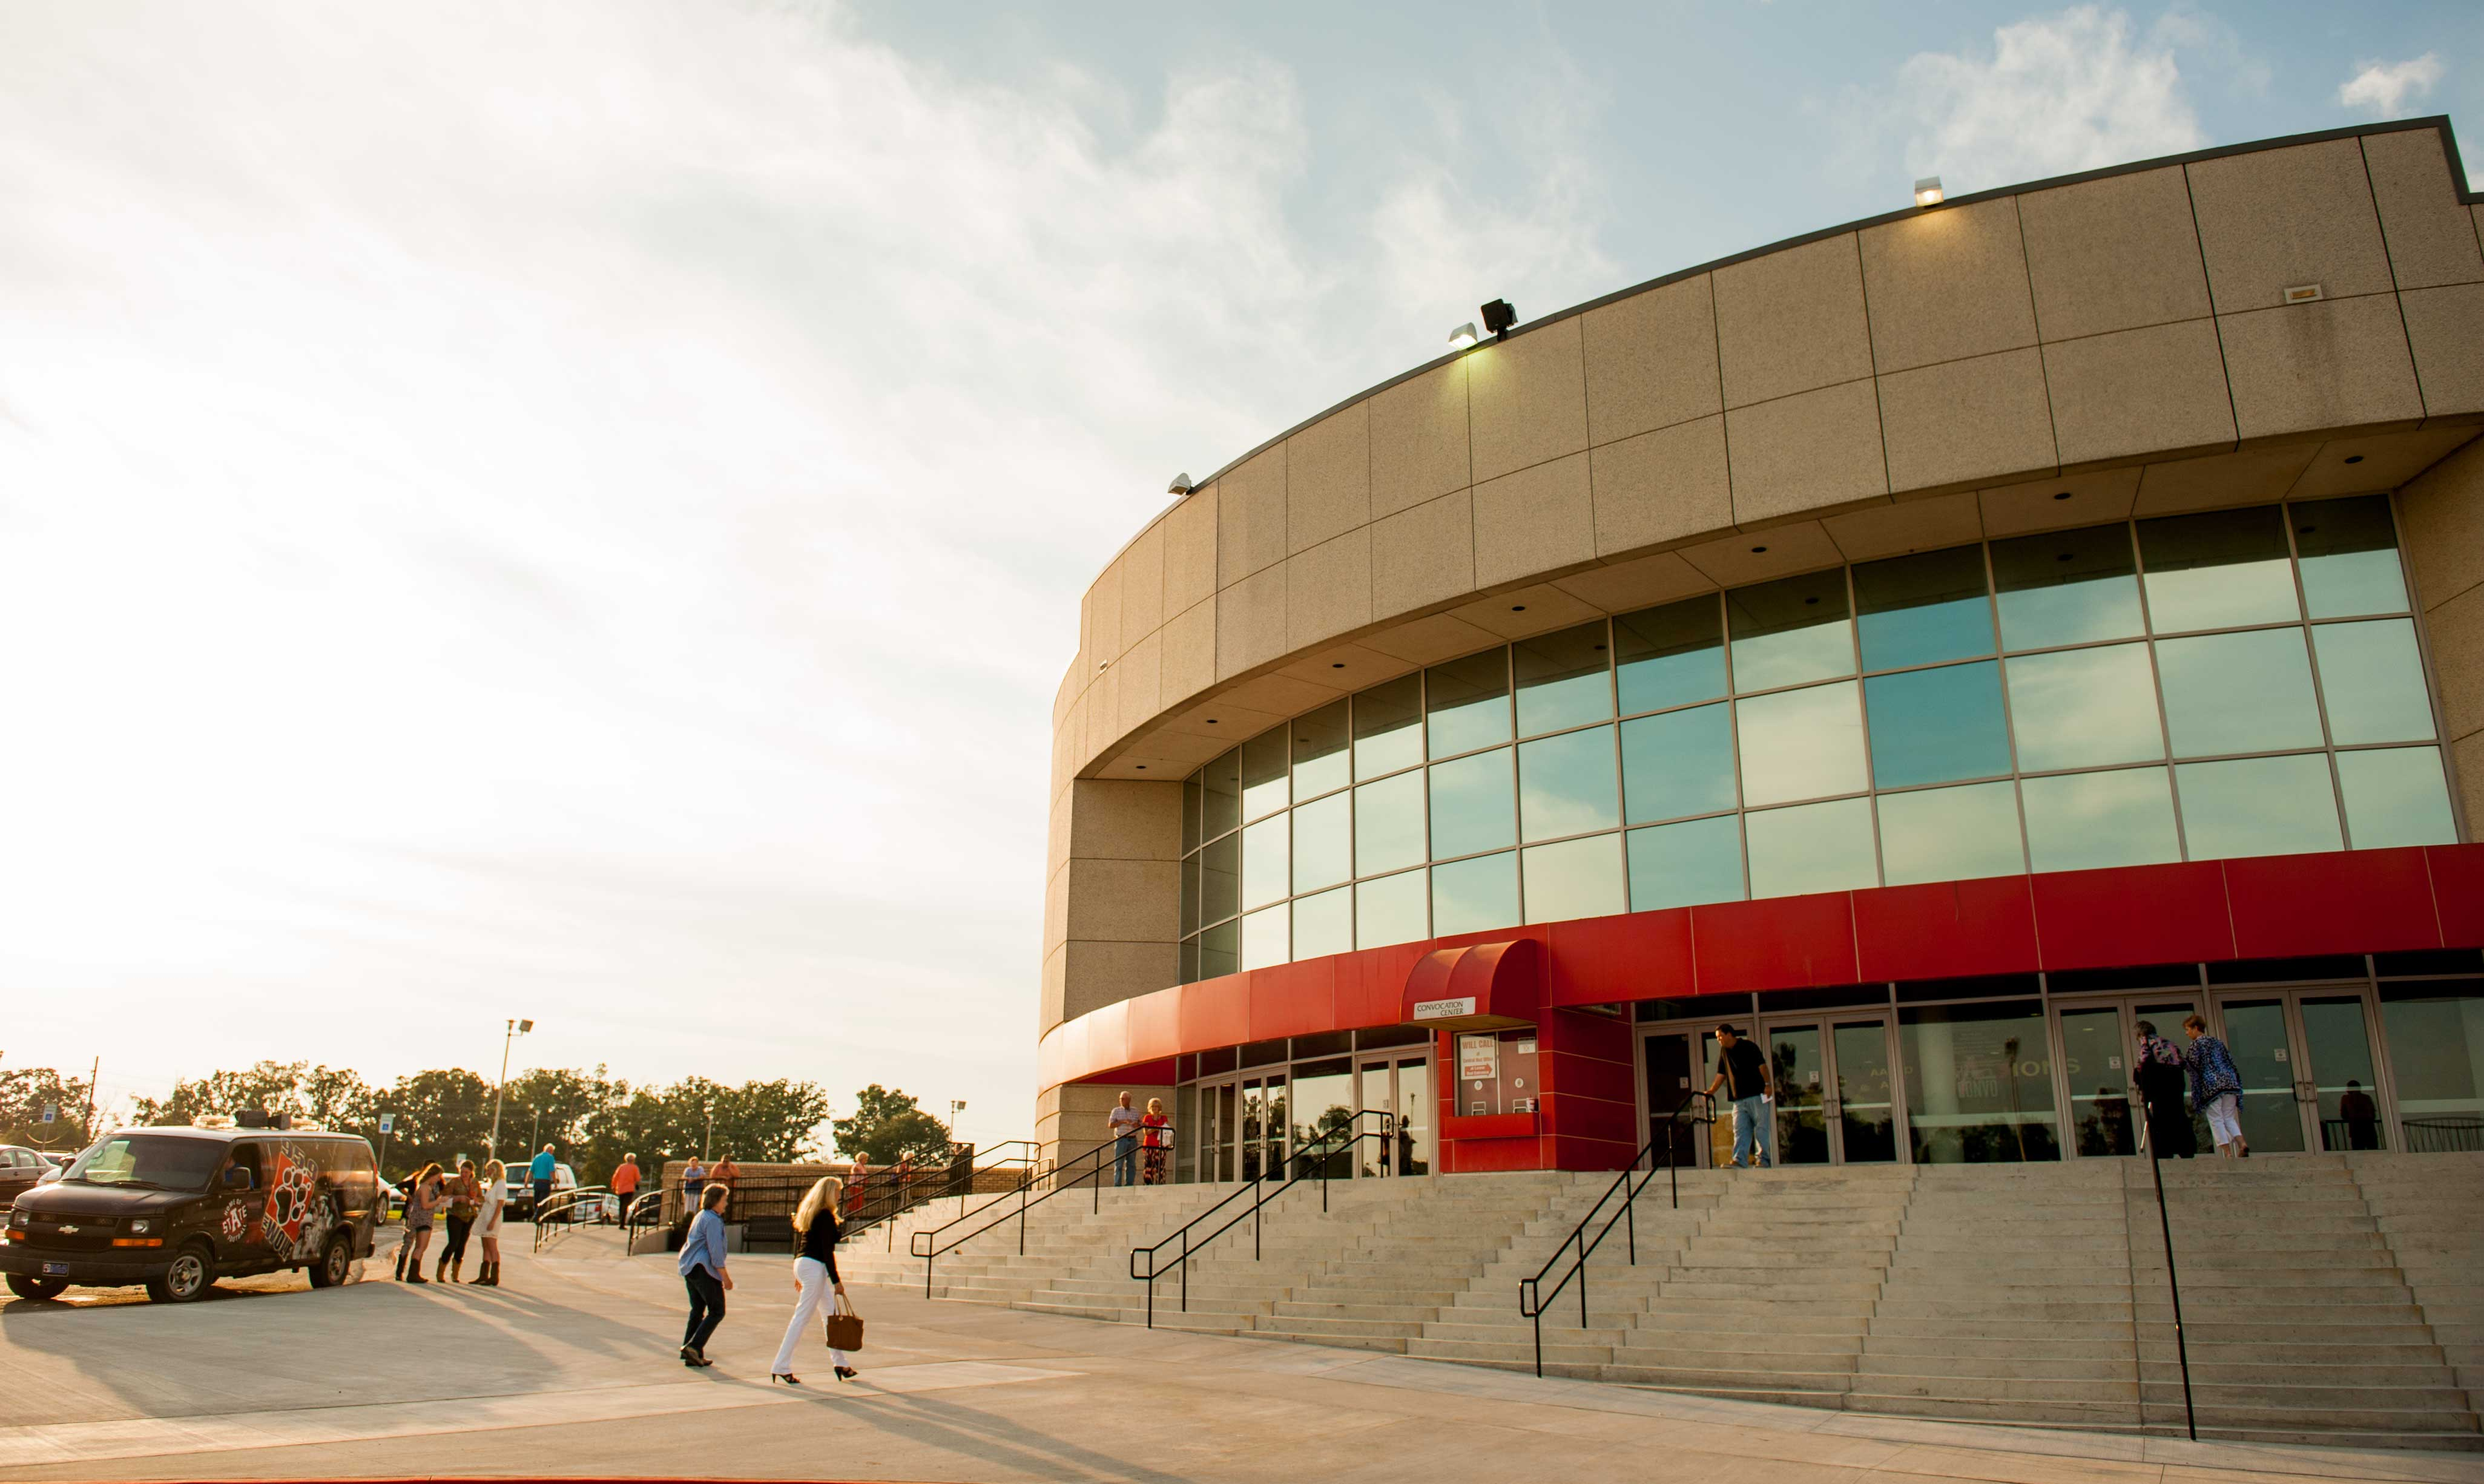 The red entrance of the Convocation Center